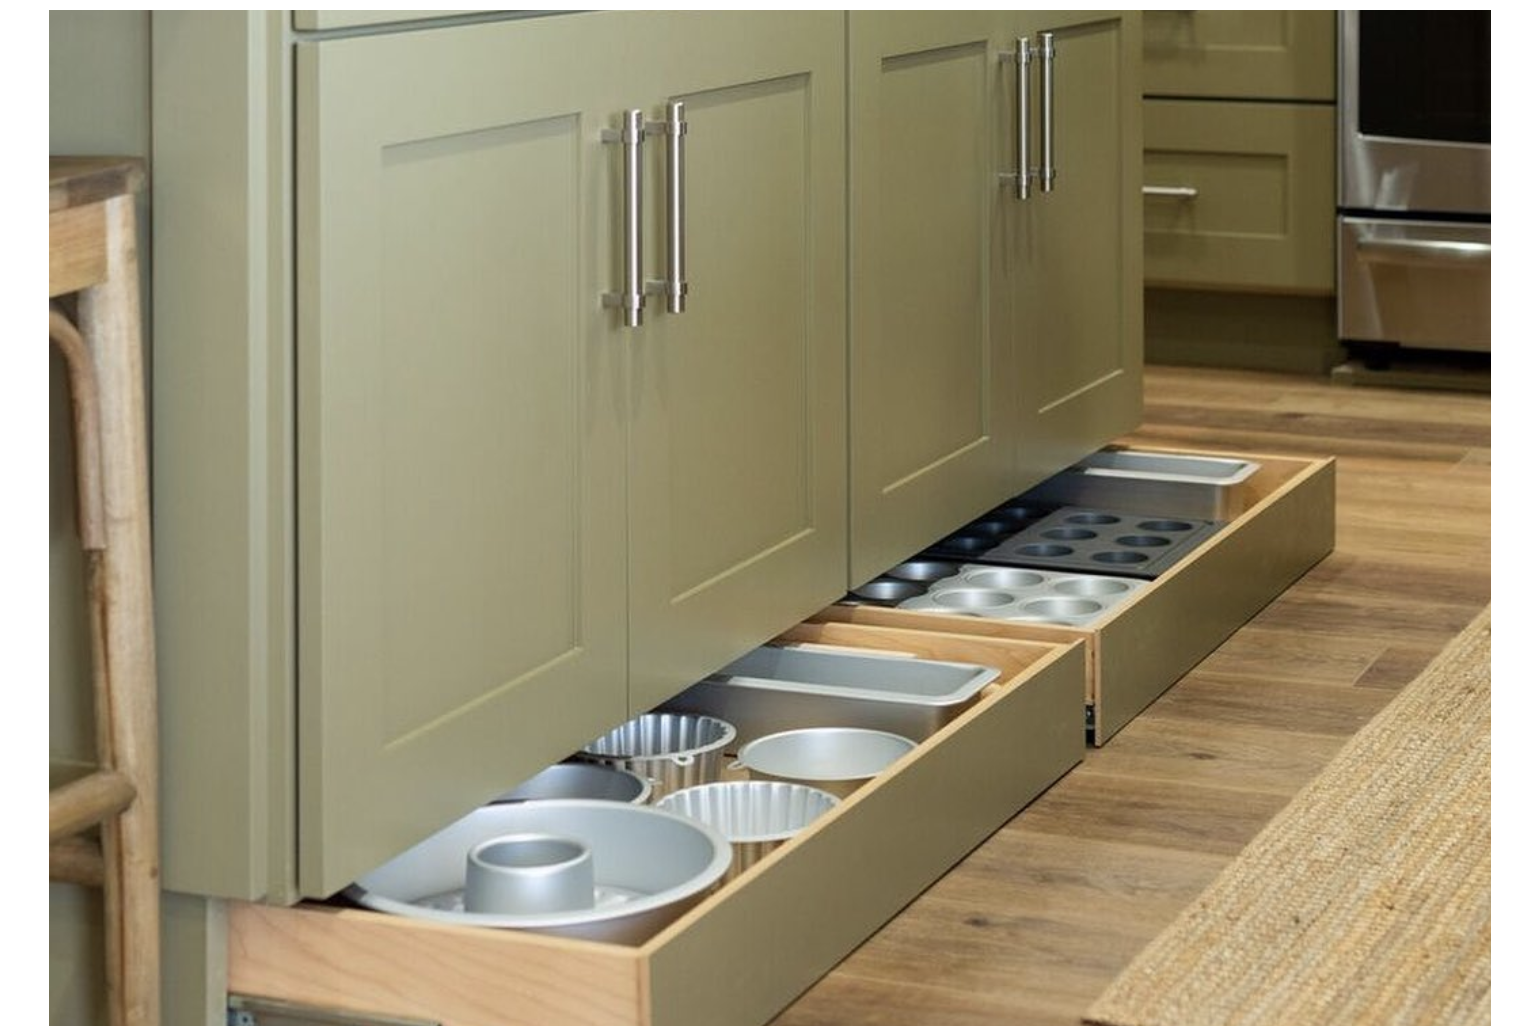 Toe Kick Drawers Are The Hidden Storage Space That Will Transform Your Kitchen Kitchen Drawer Storage Ideas In 2020 Hidden Storage Kitchen Furniture Kitchen Style